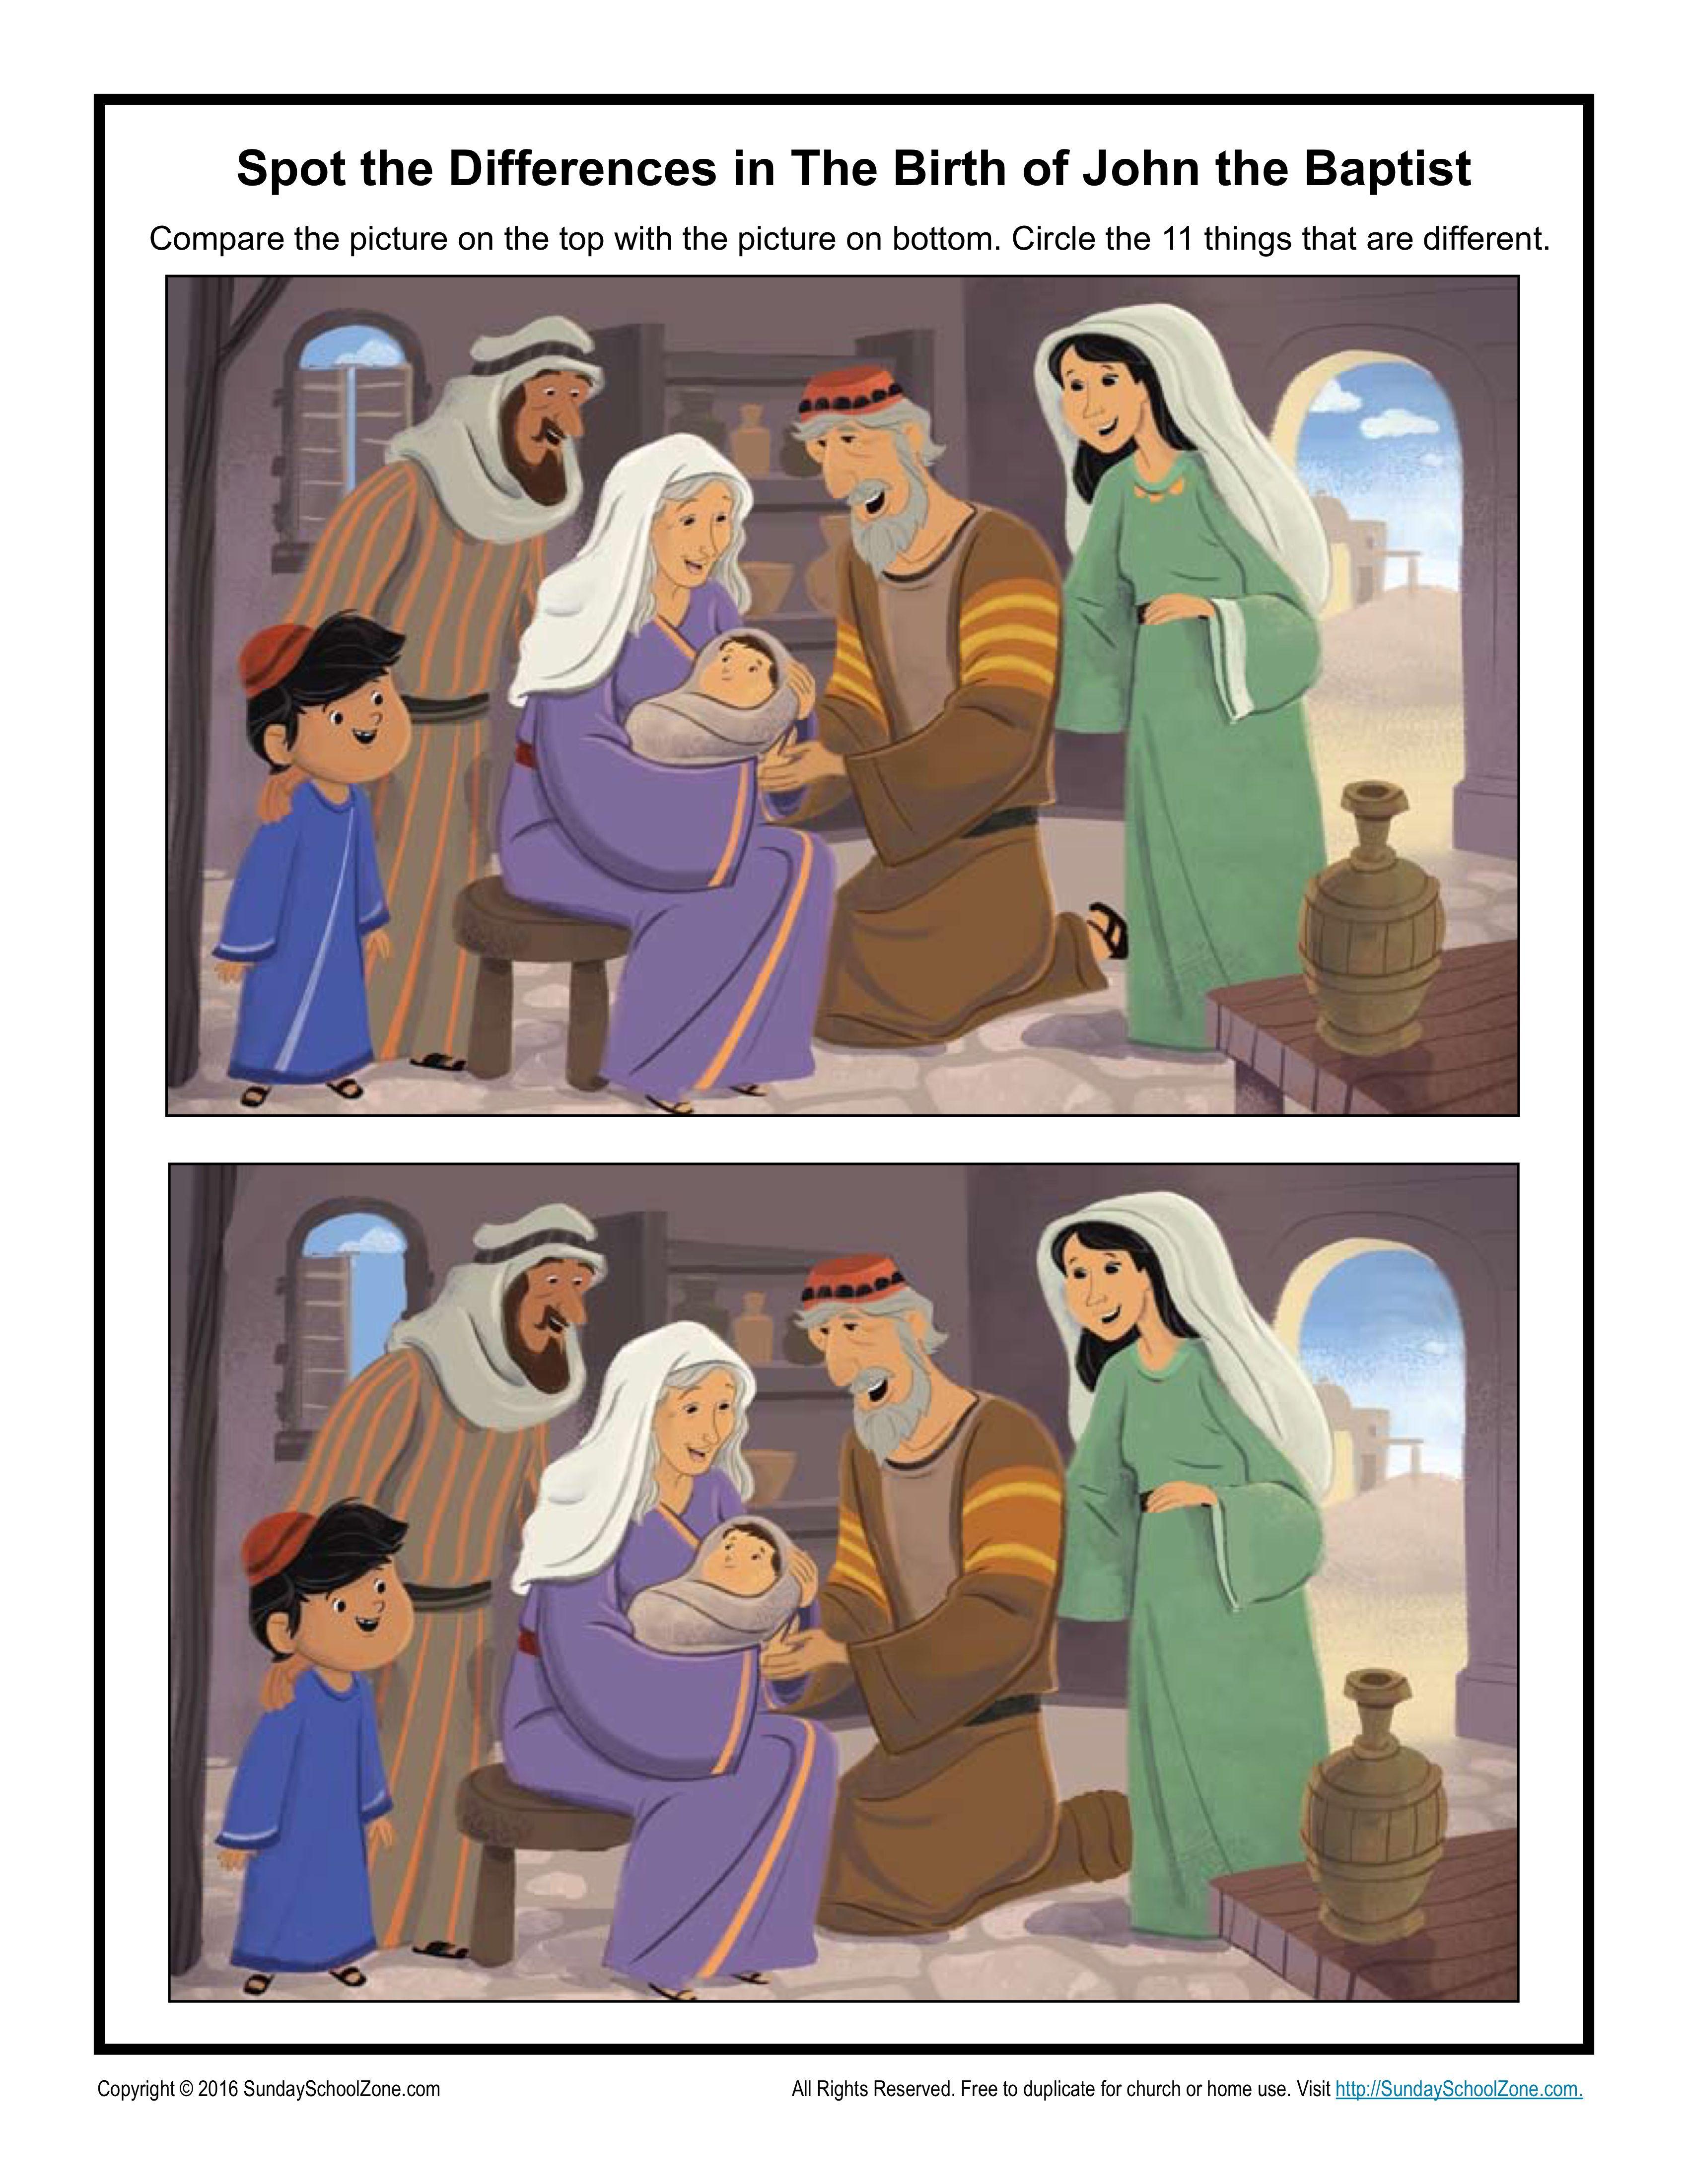 The Birth Of John The Baptist Spot The Differences